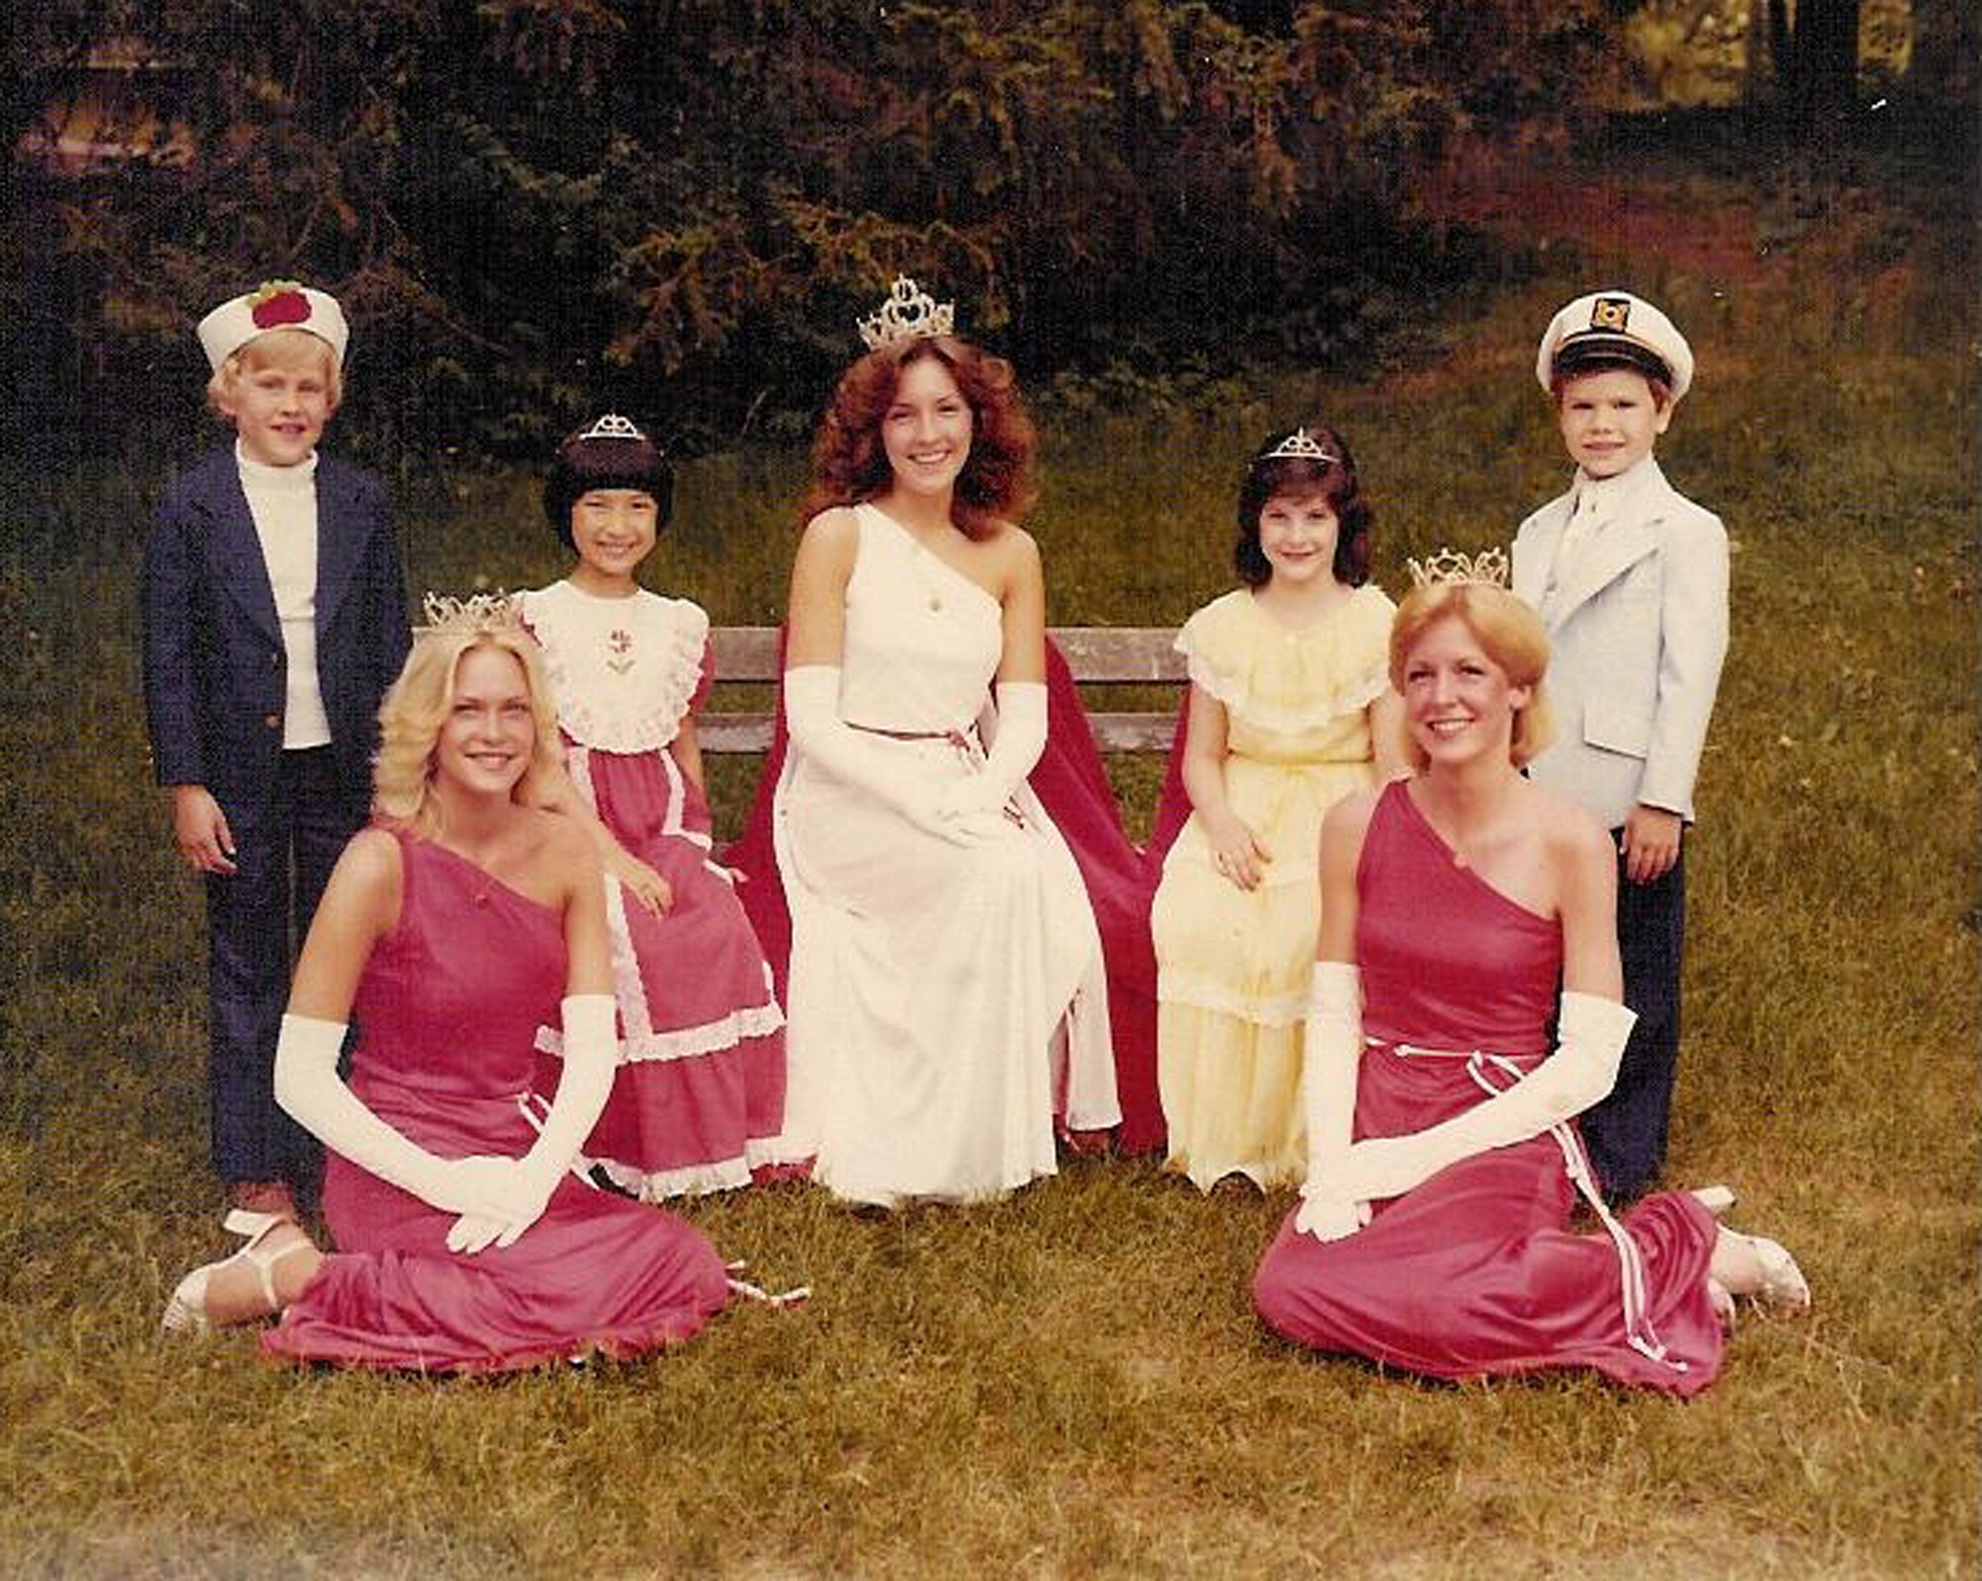 1978-1979 Royal Family photo